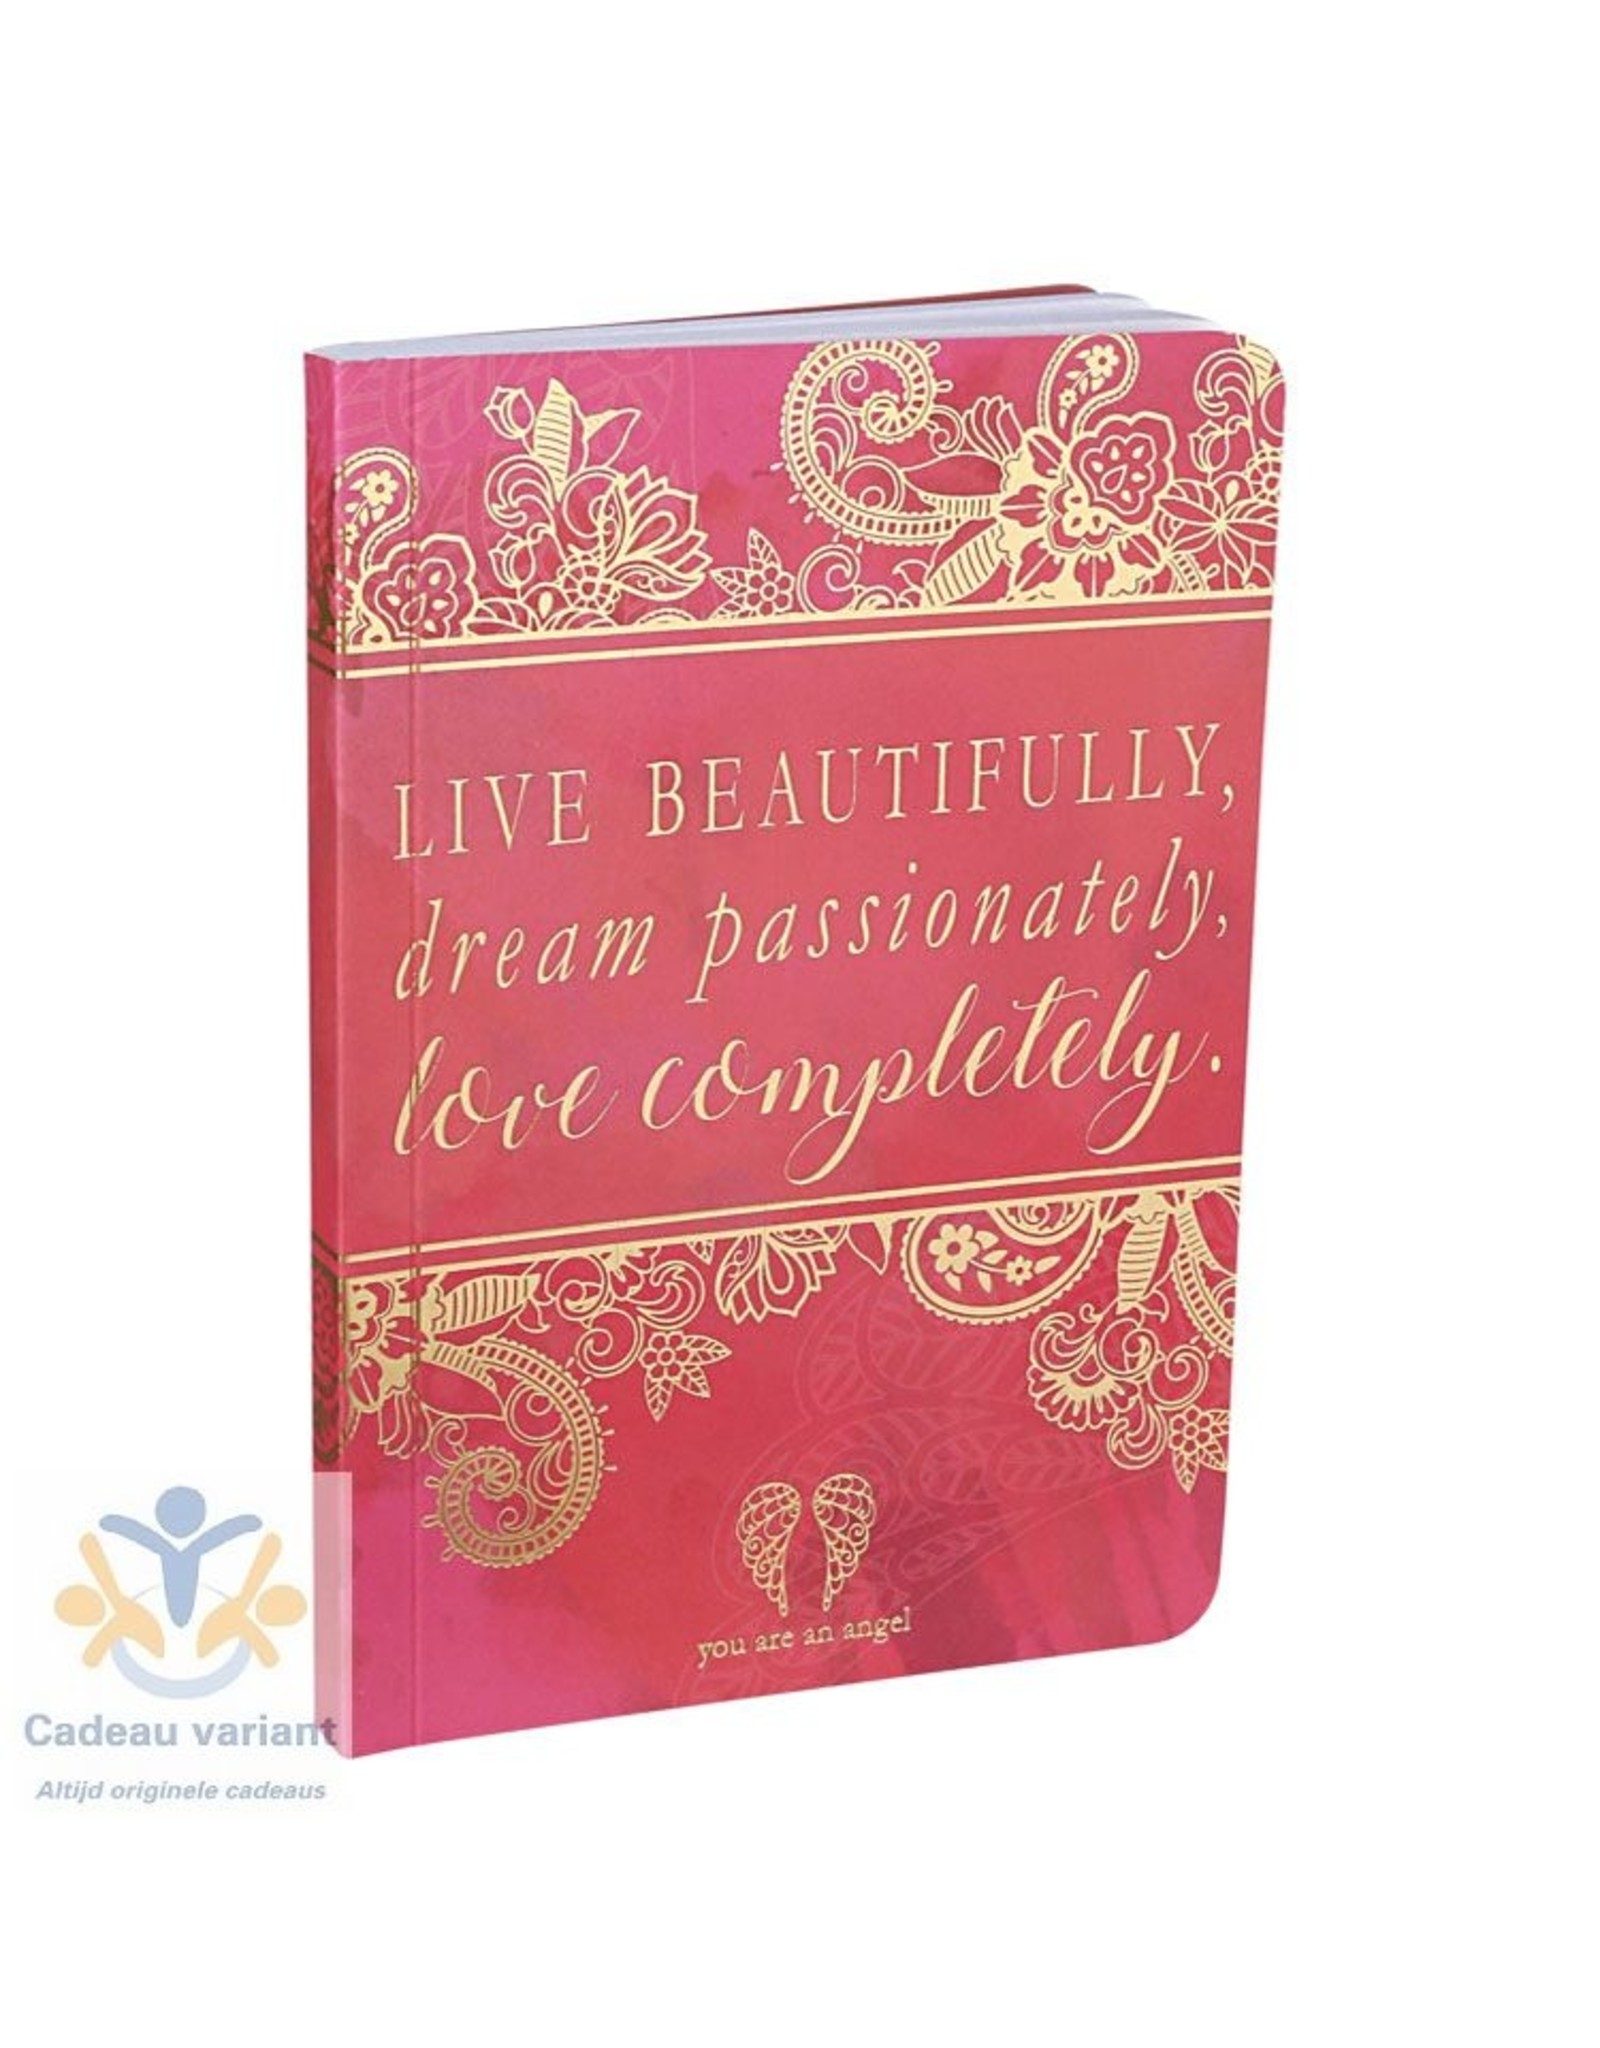 You are an angel Notitieboek live beautifully